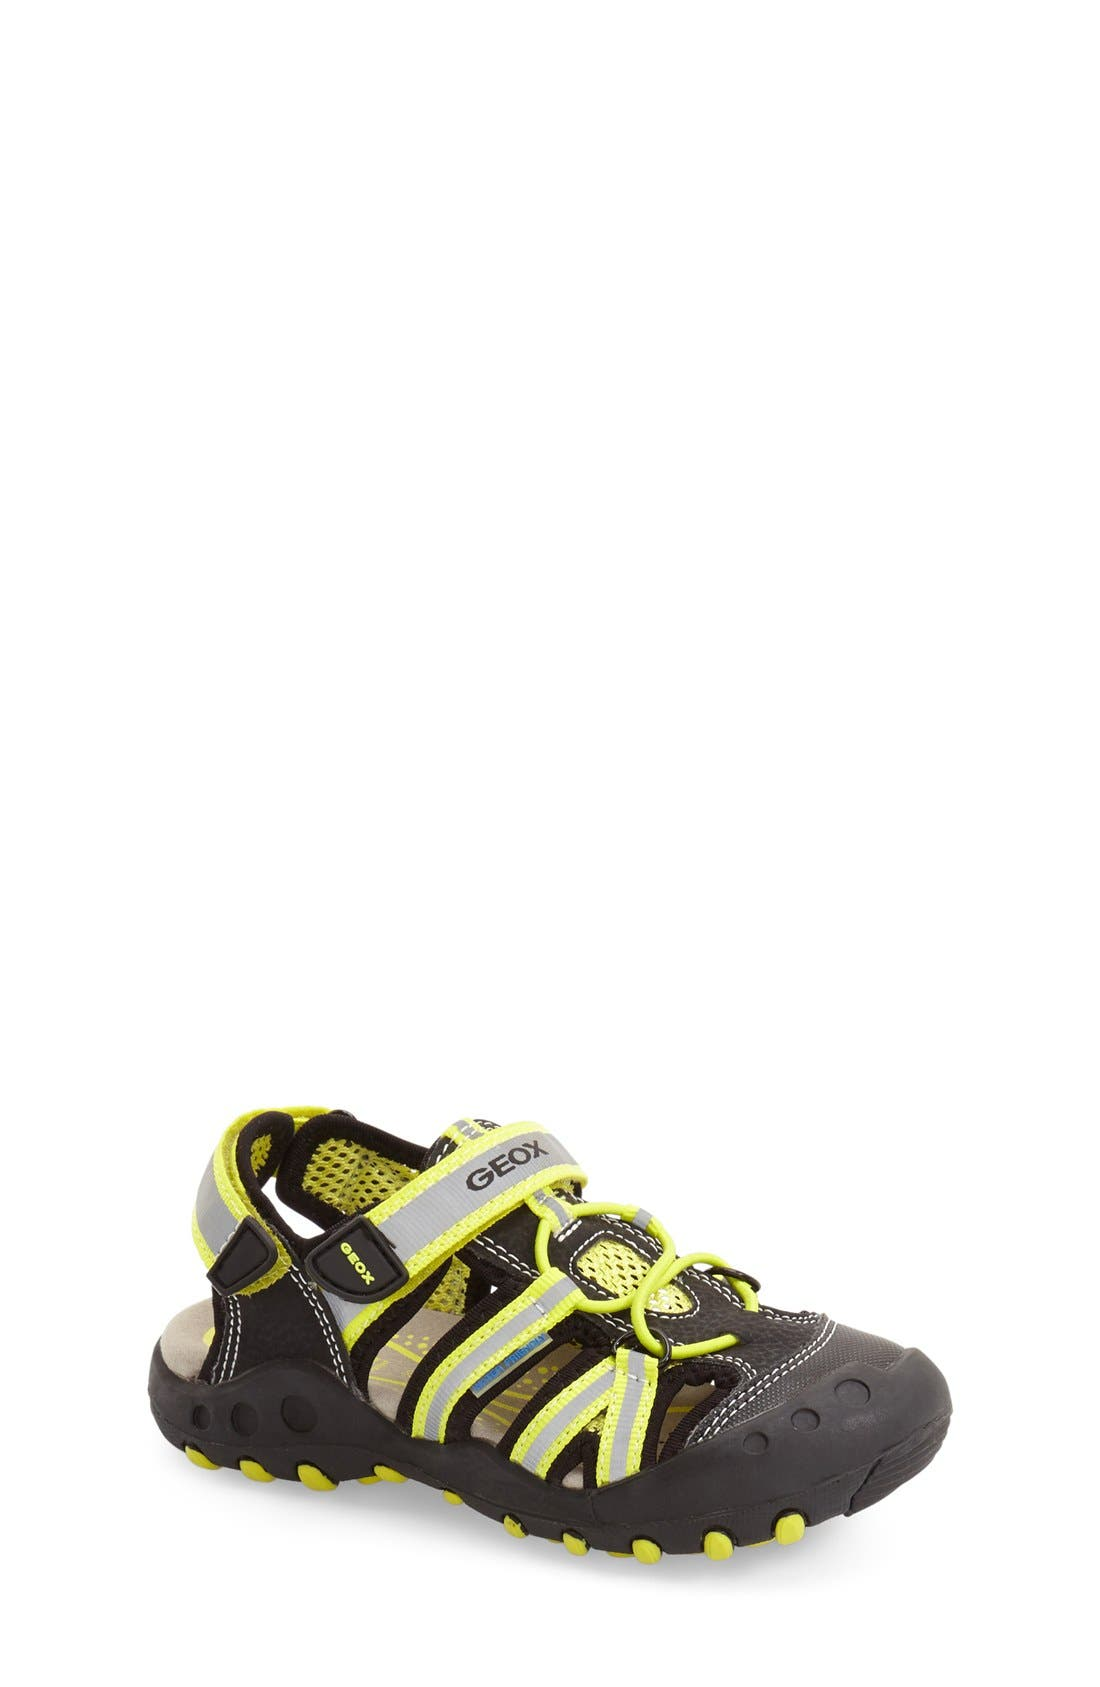 Main Image - Geox 'Kyle' Sandal (Toddler, Little Kid & Big Kid)